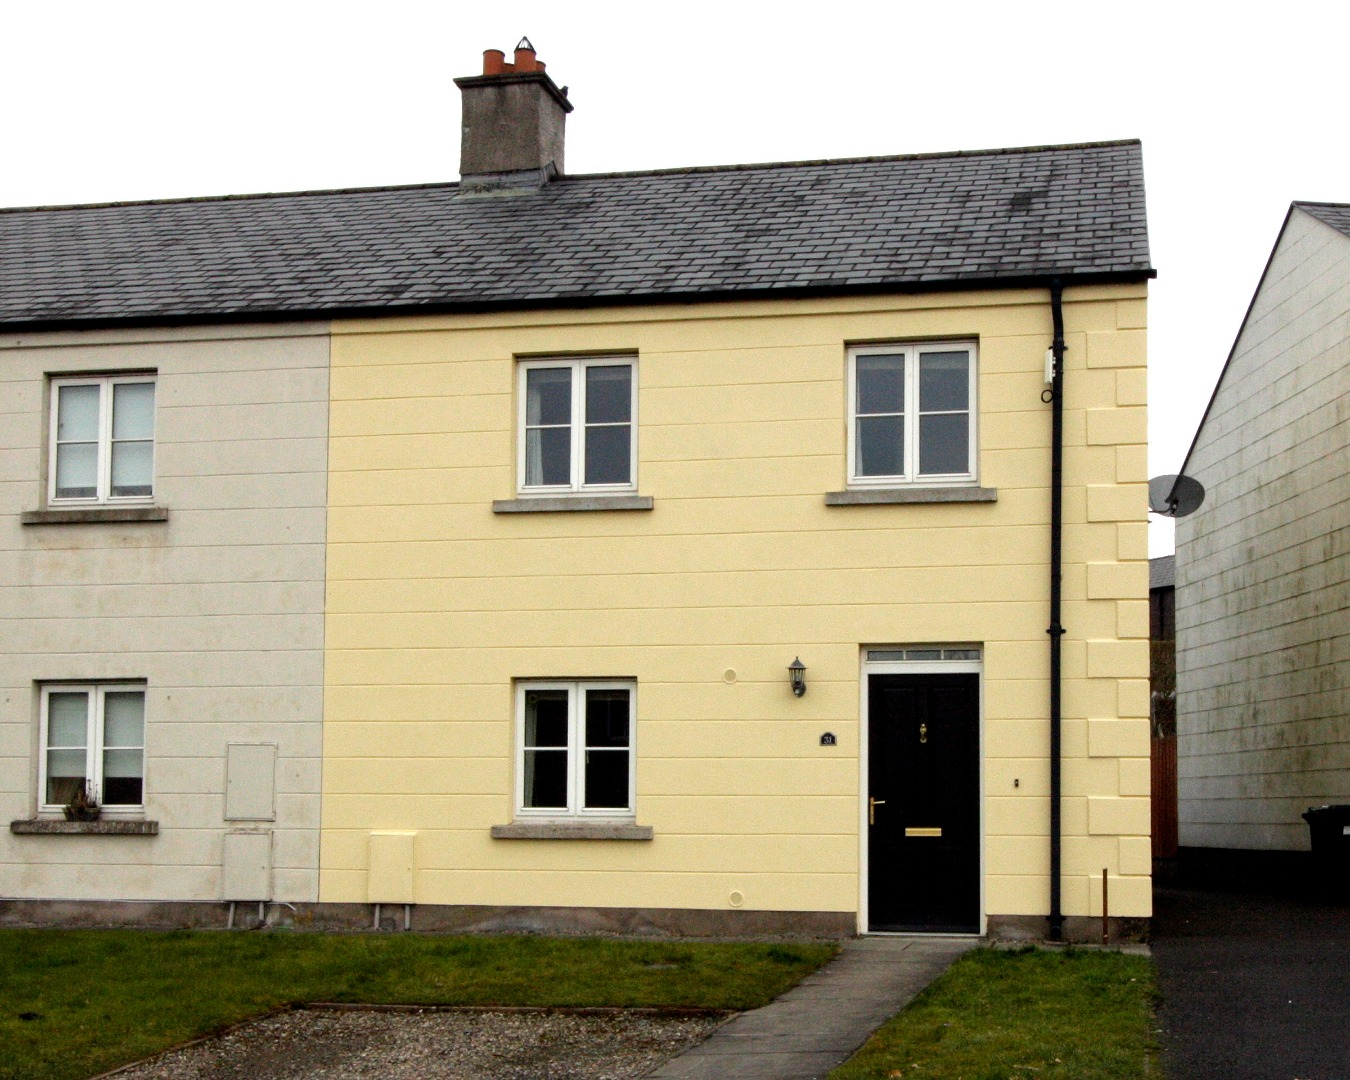 3 bed for sale on No.31 Village Square, Glaslough, Monaghan - Property Image 1